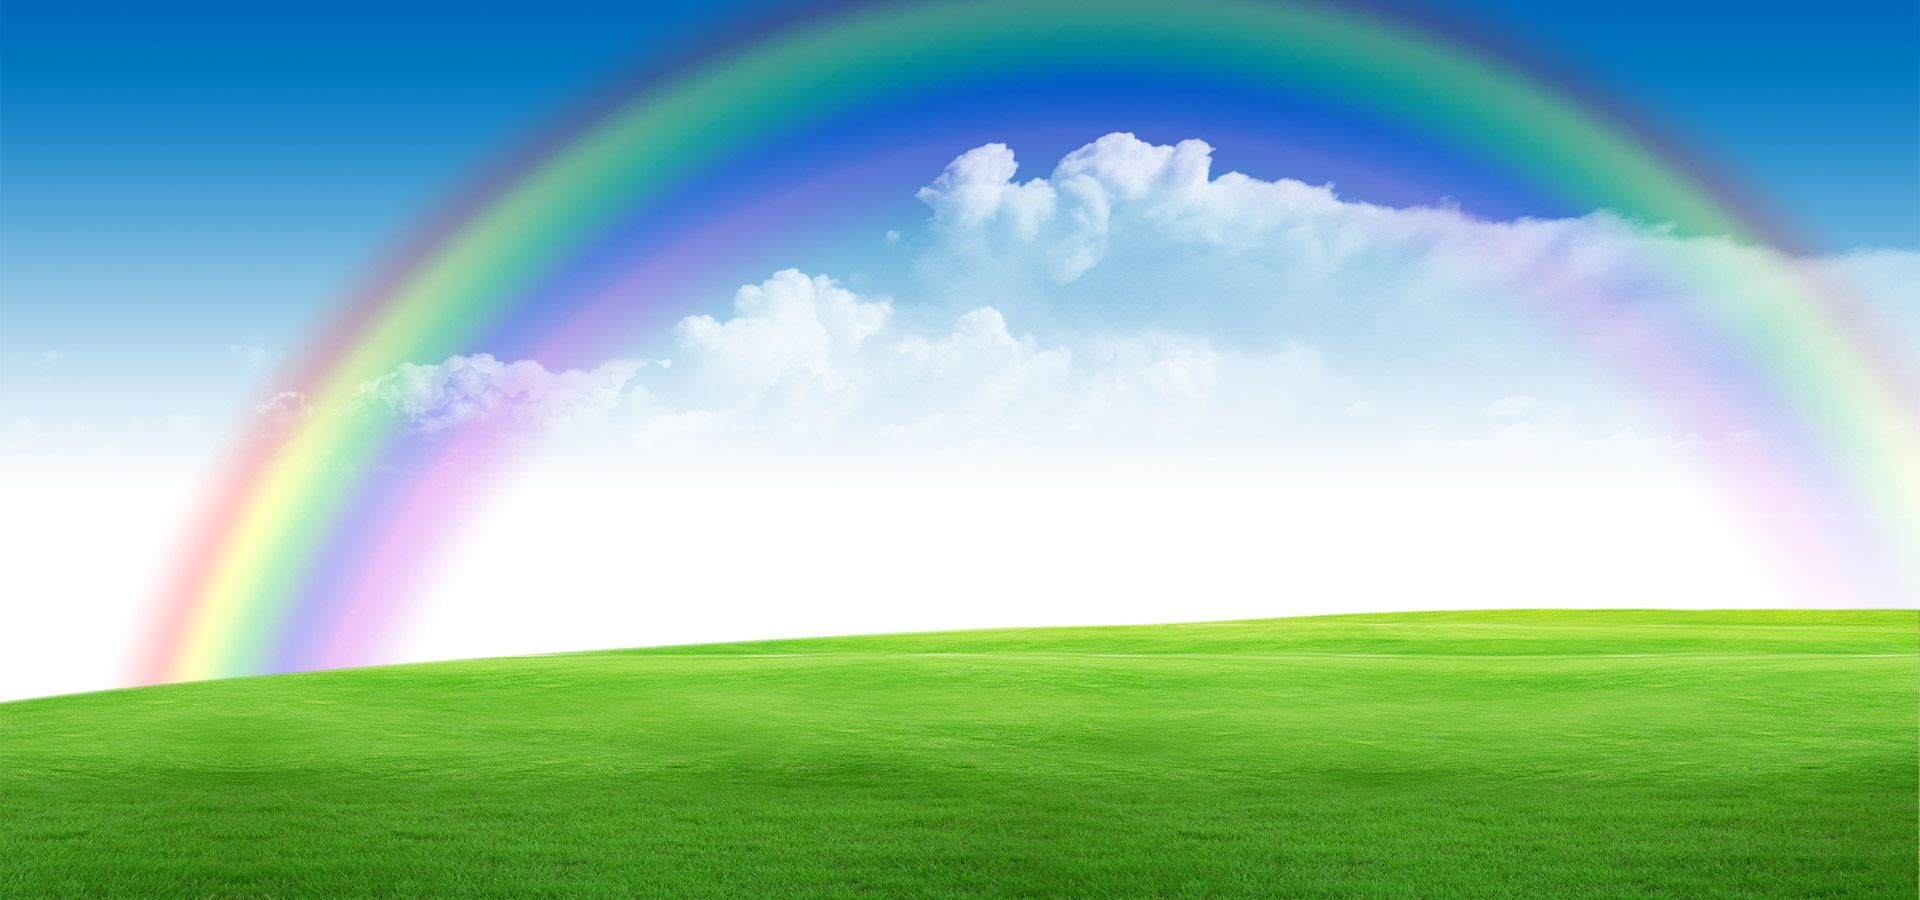 Blue Sky Rainbow Background Scenery With Images Rainbow